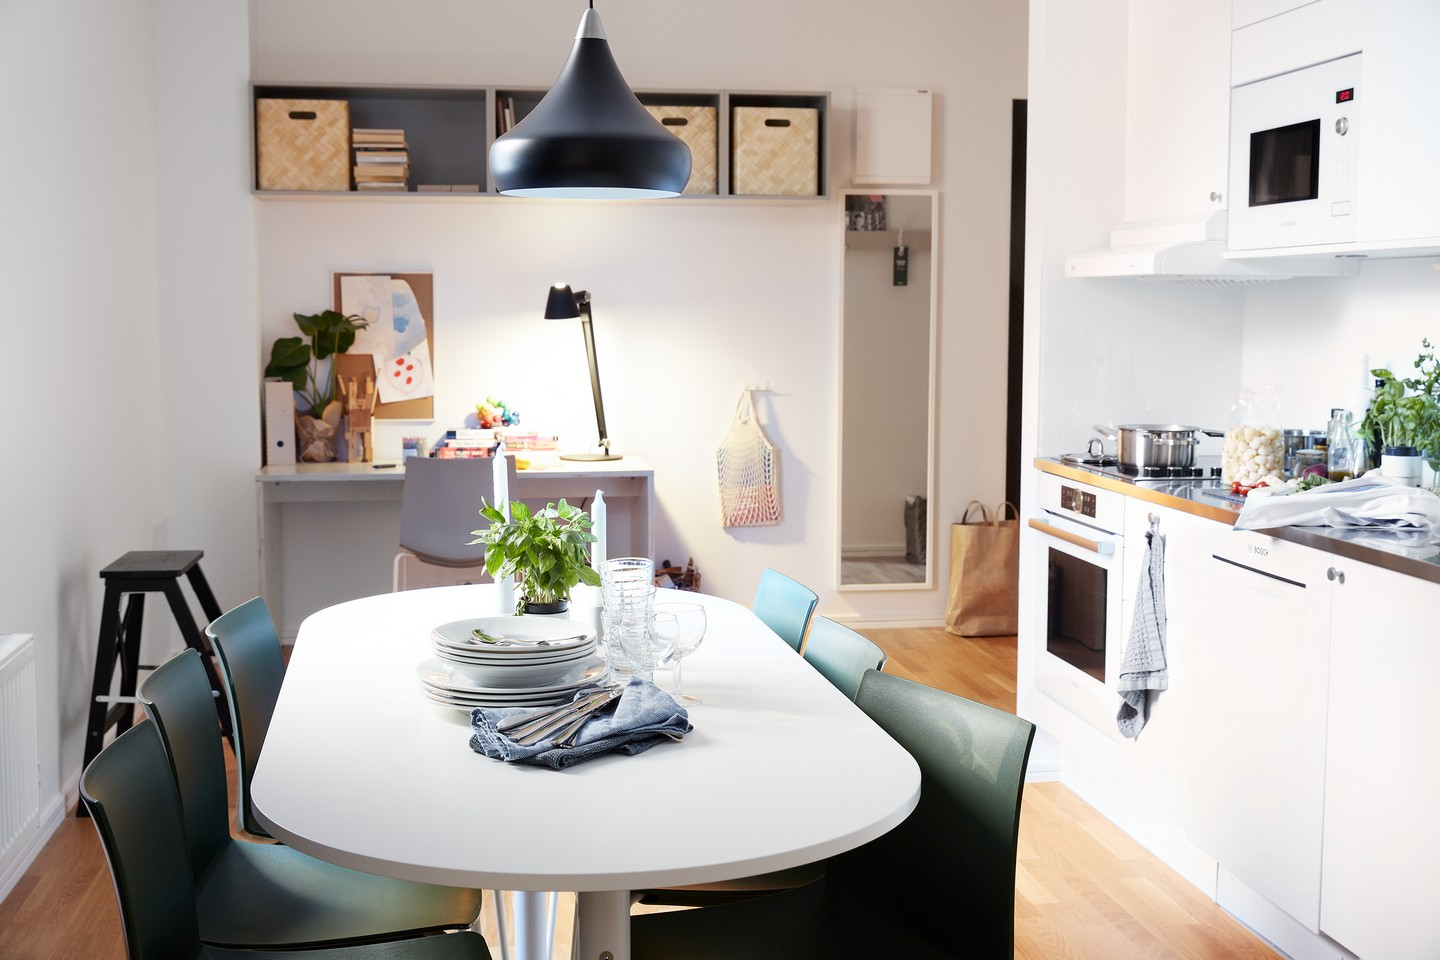 Stayat, Forenom, disrupt, sweden, Malmo, serviced apartment, business travel, apartments, Stockholm, Gothenburg